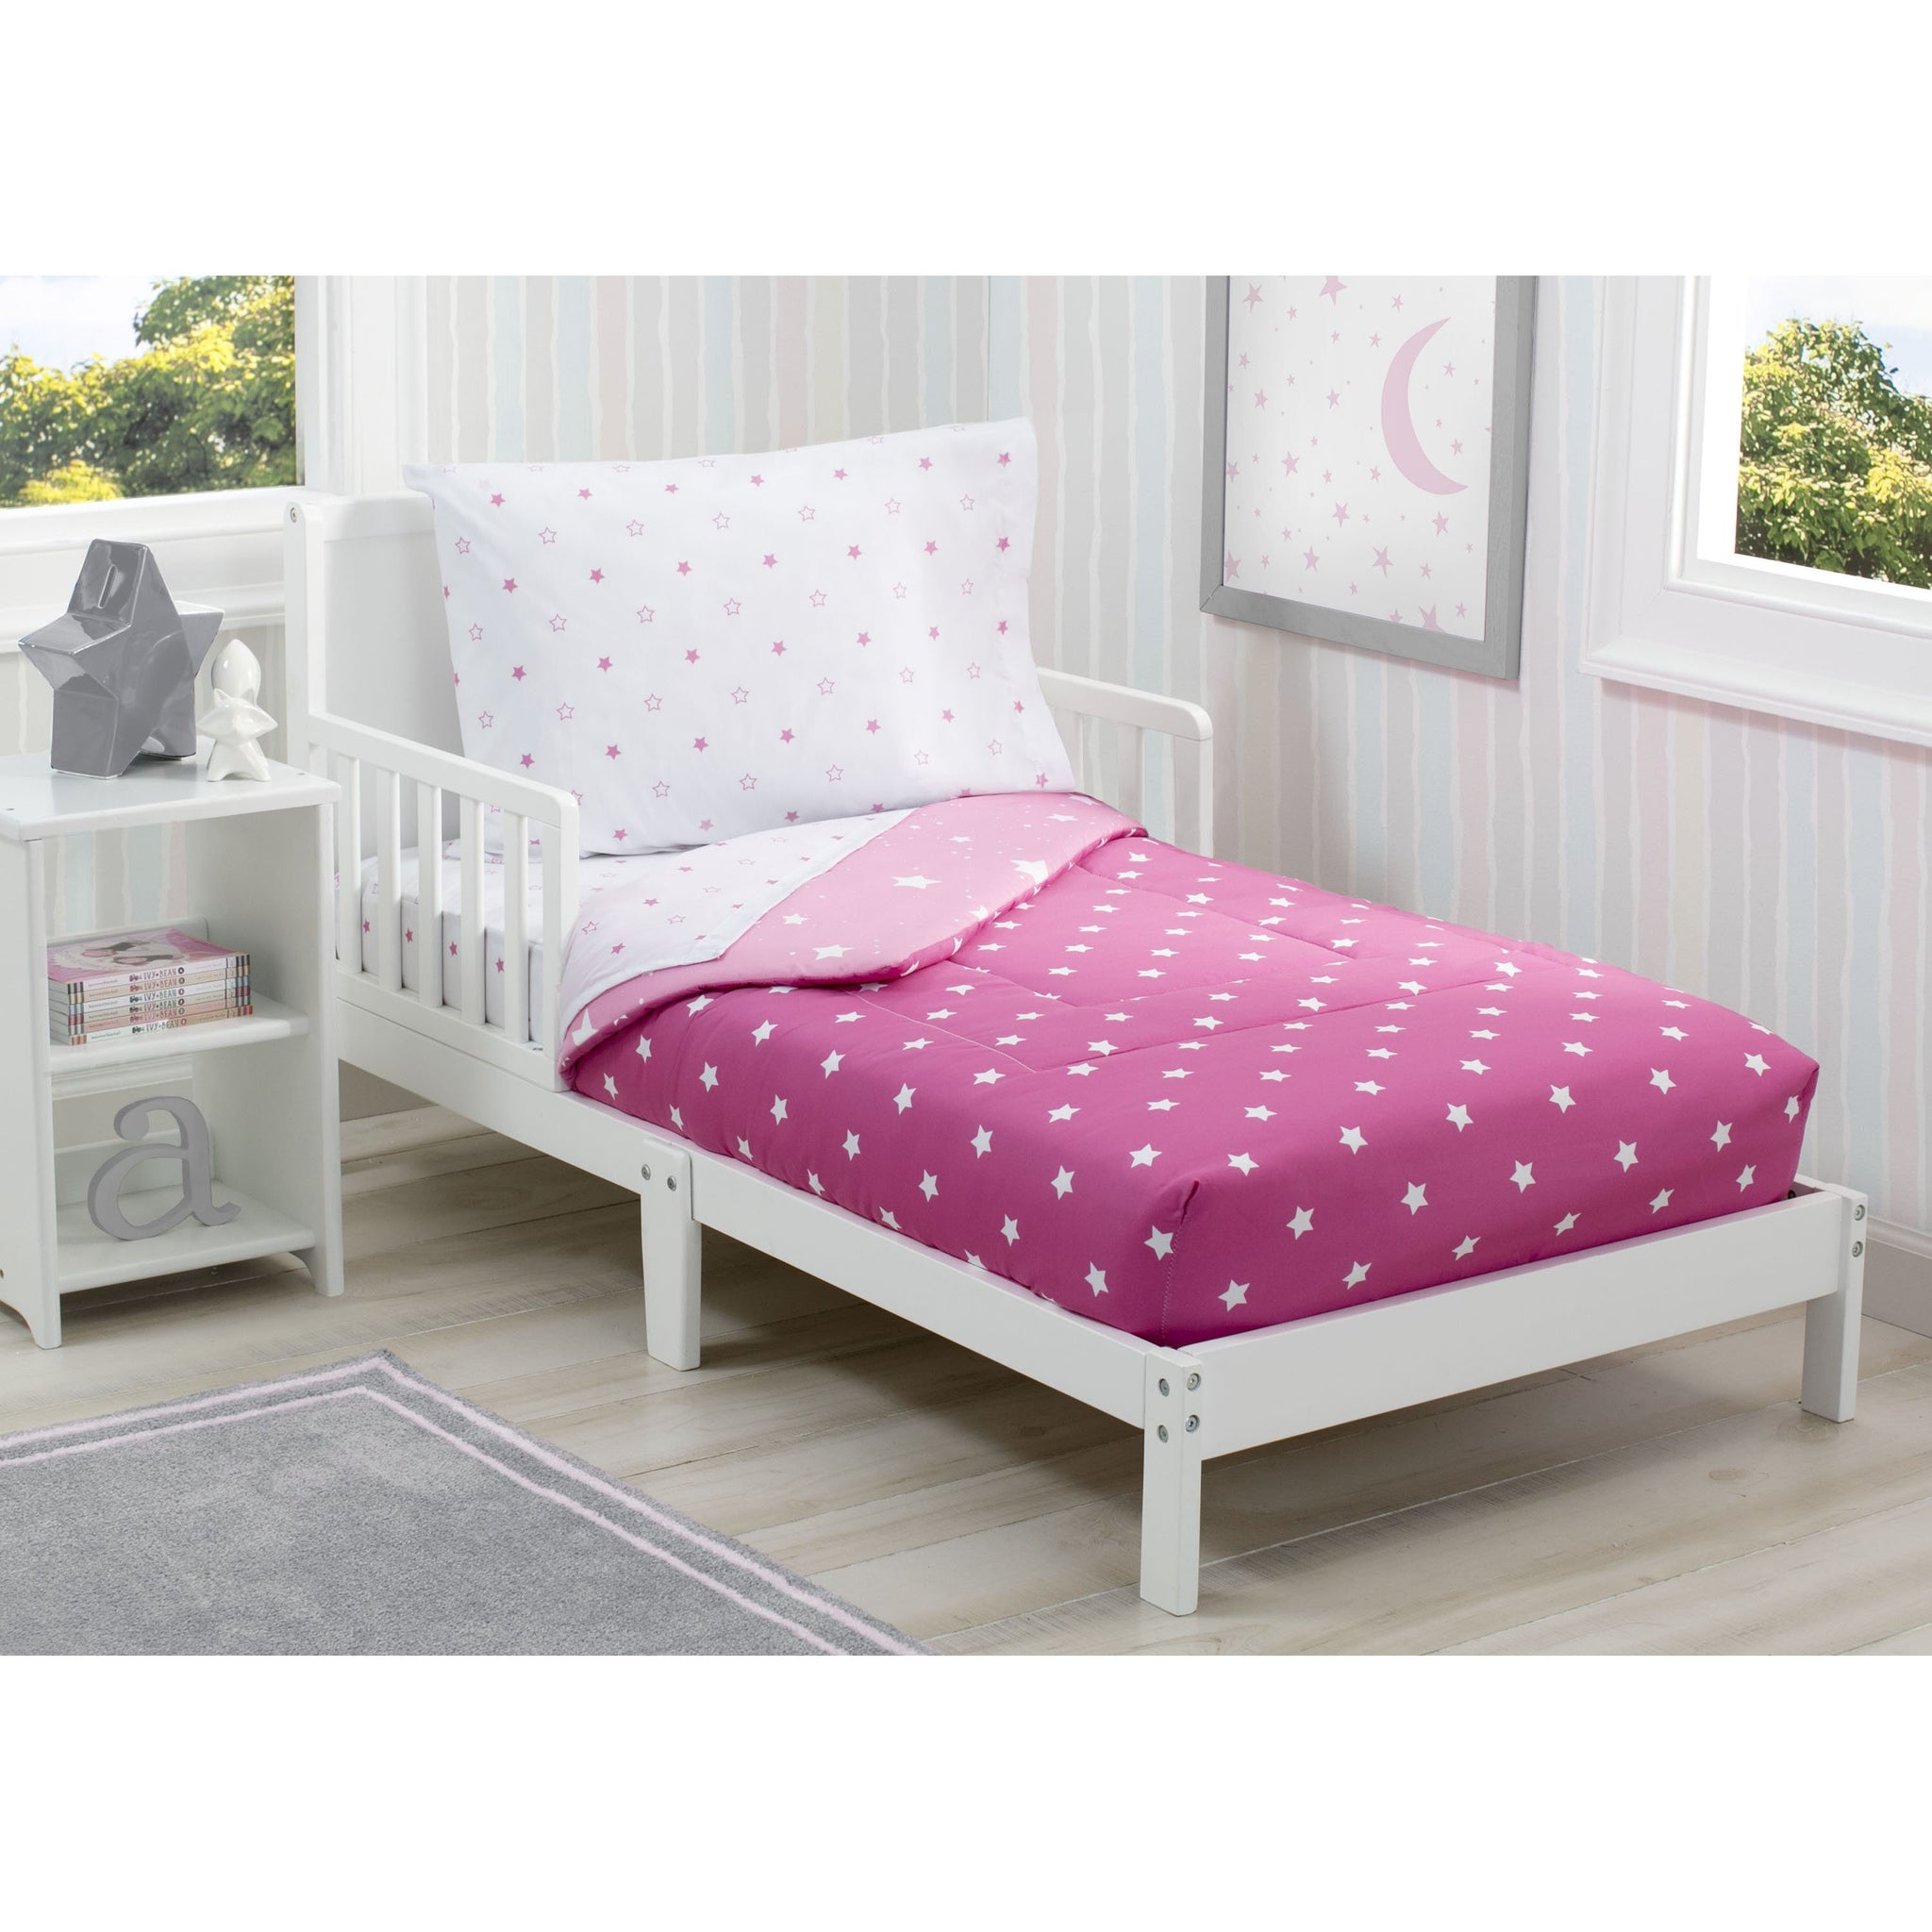 Girls 4-Piece Toddler Bedding Set